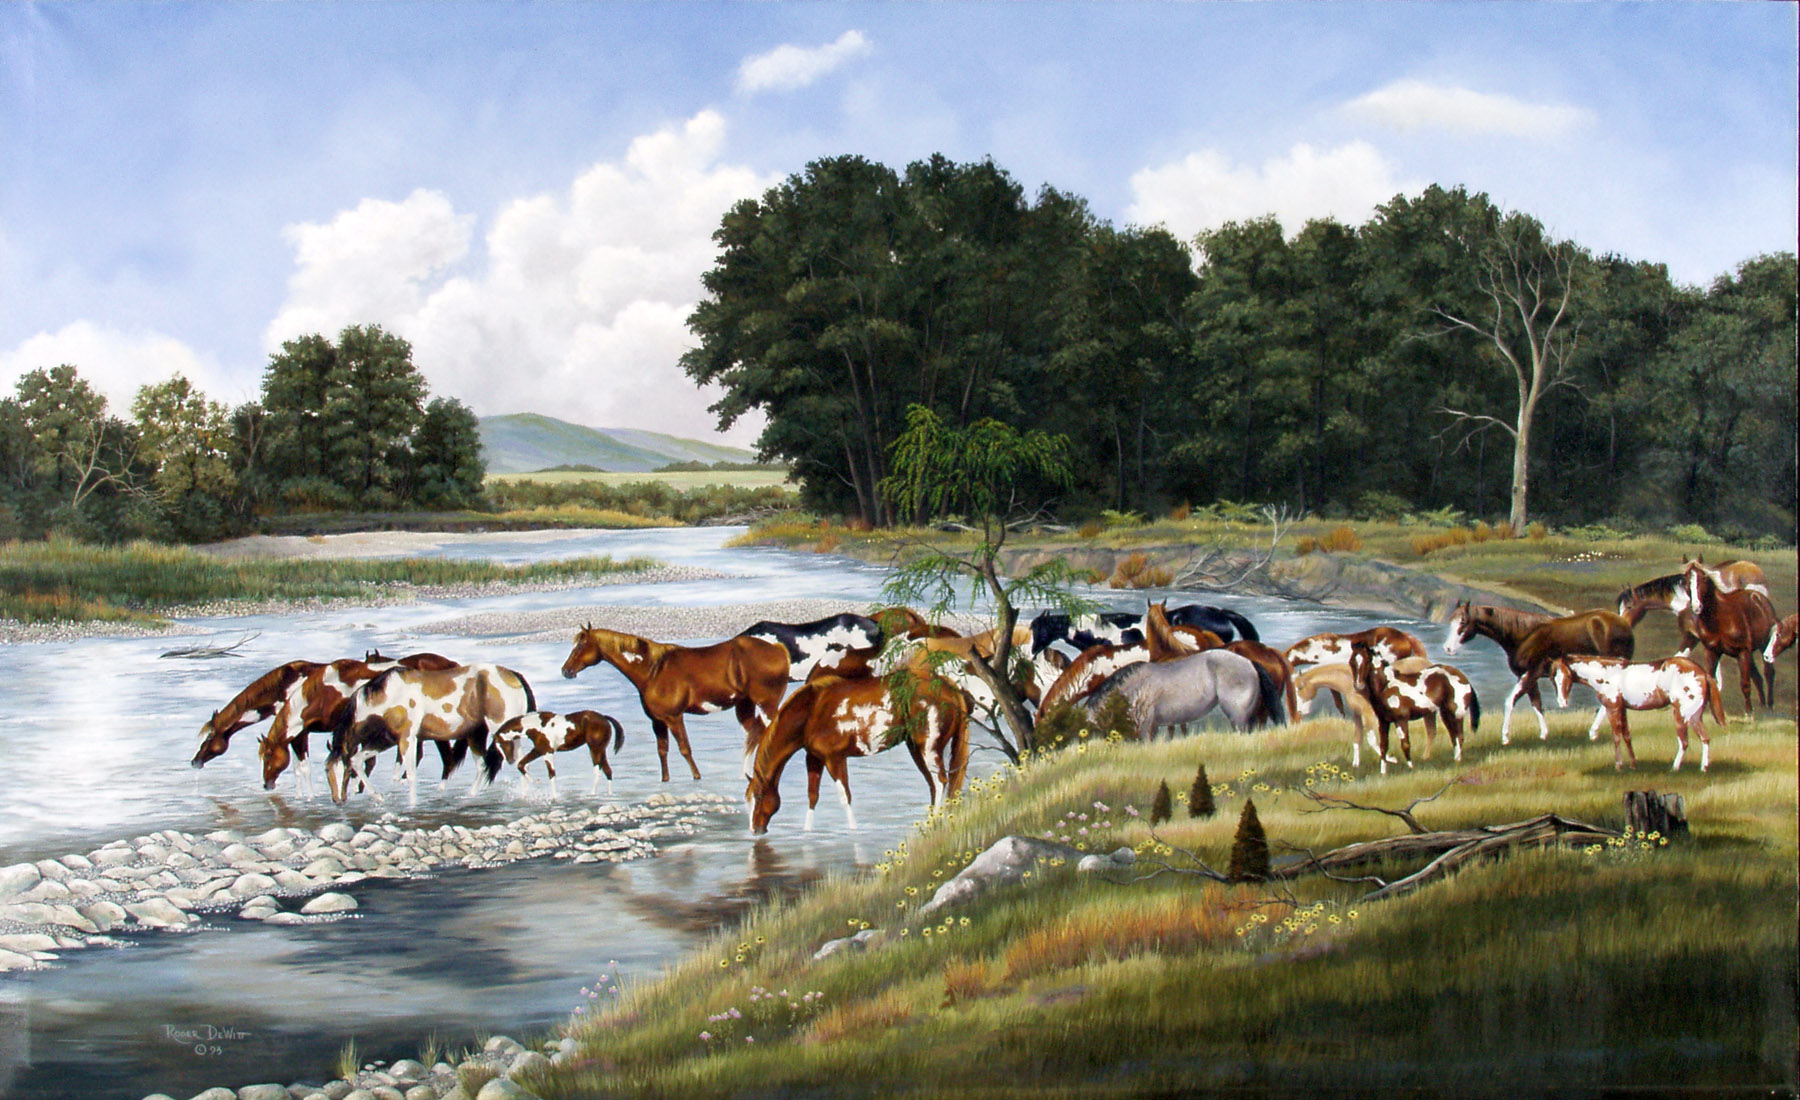 This scene is taken from a particular place along the Jack's Forks River in the Ozark region of southern Missouri. When I was young I used to ride along this river on our family trail riding vacations. The horses in the picture are a few of the many my wife and I have raised over the past 30 years. They were painted from individual photographs we had taken. If I ever sell the farm, I might slip off to these hills with my art supplies and a good saddle horse and never come back.